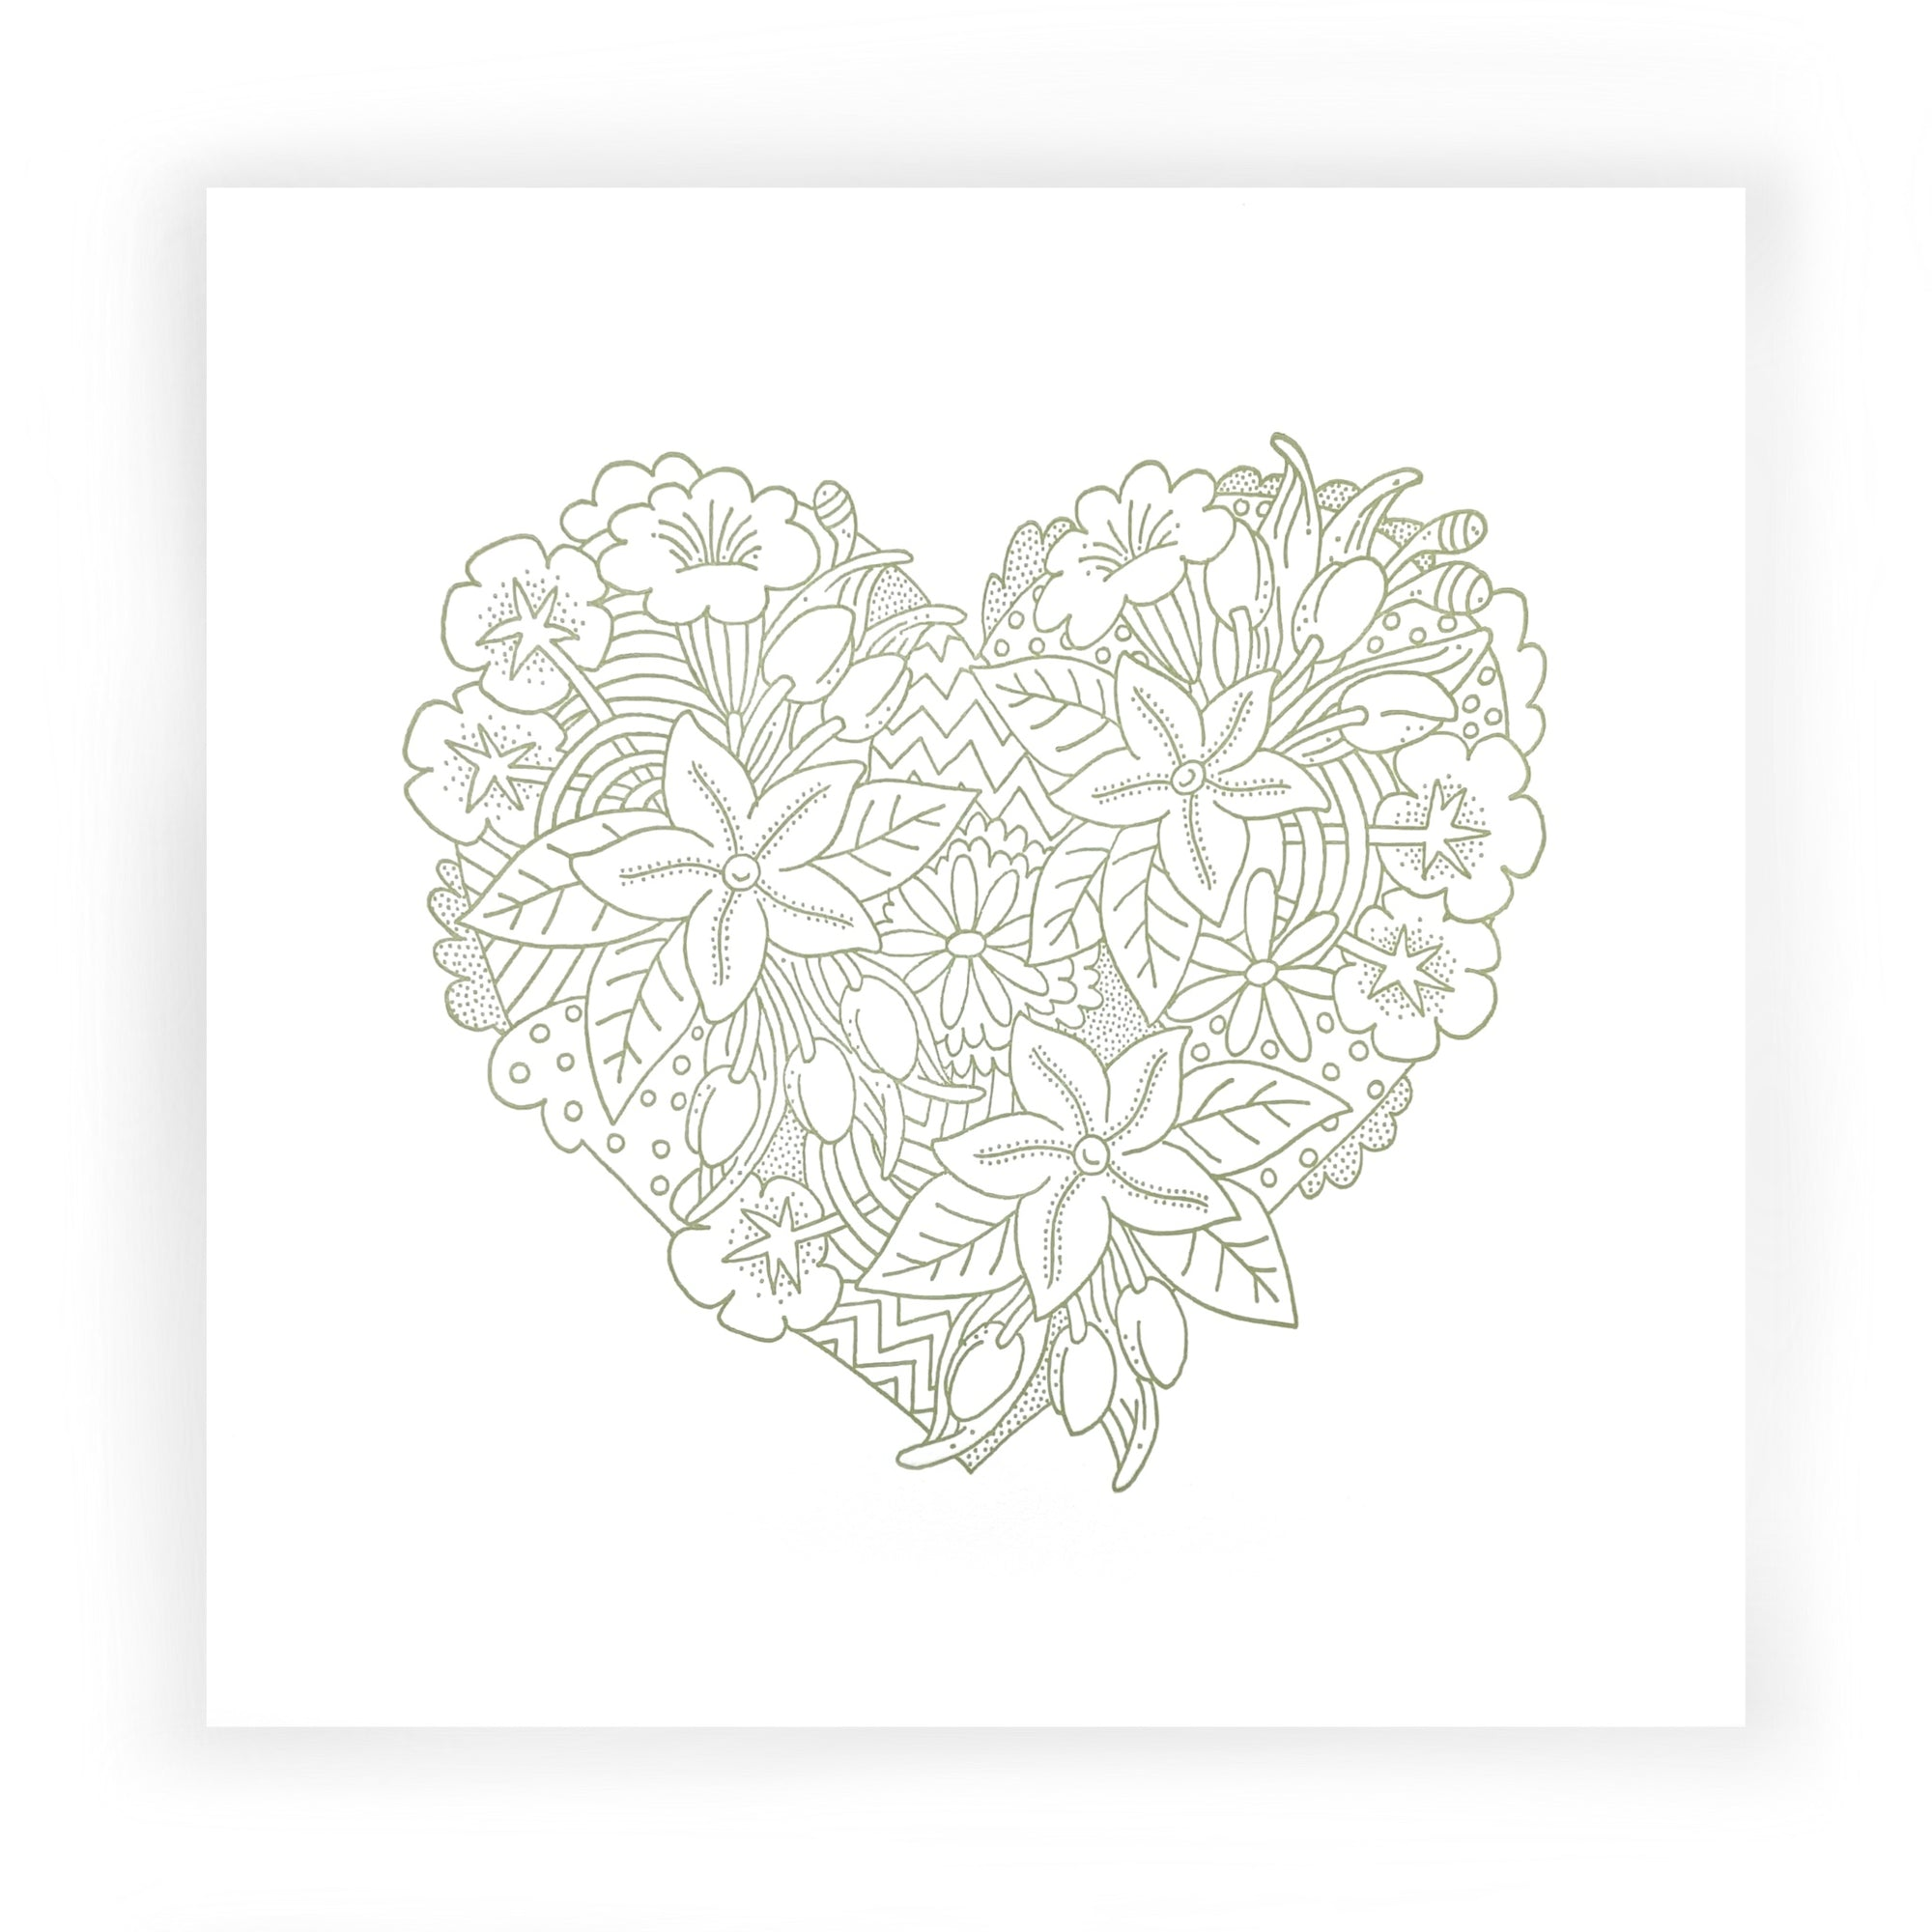 """Heart"" Letterpress Prints for Coloring by Smokey Road Press"